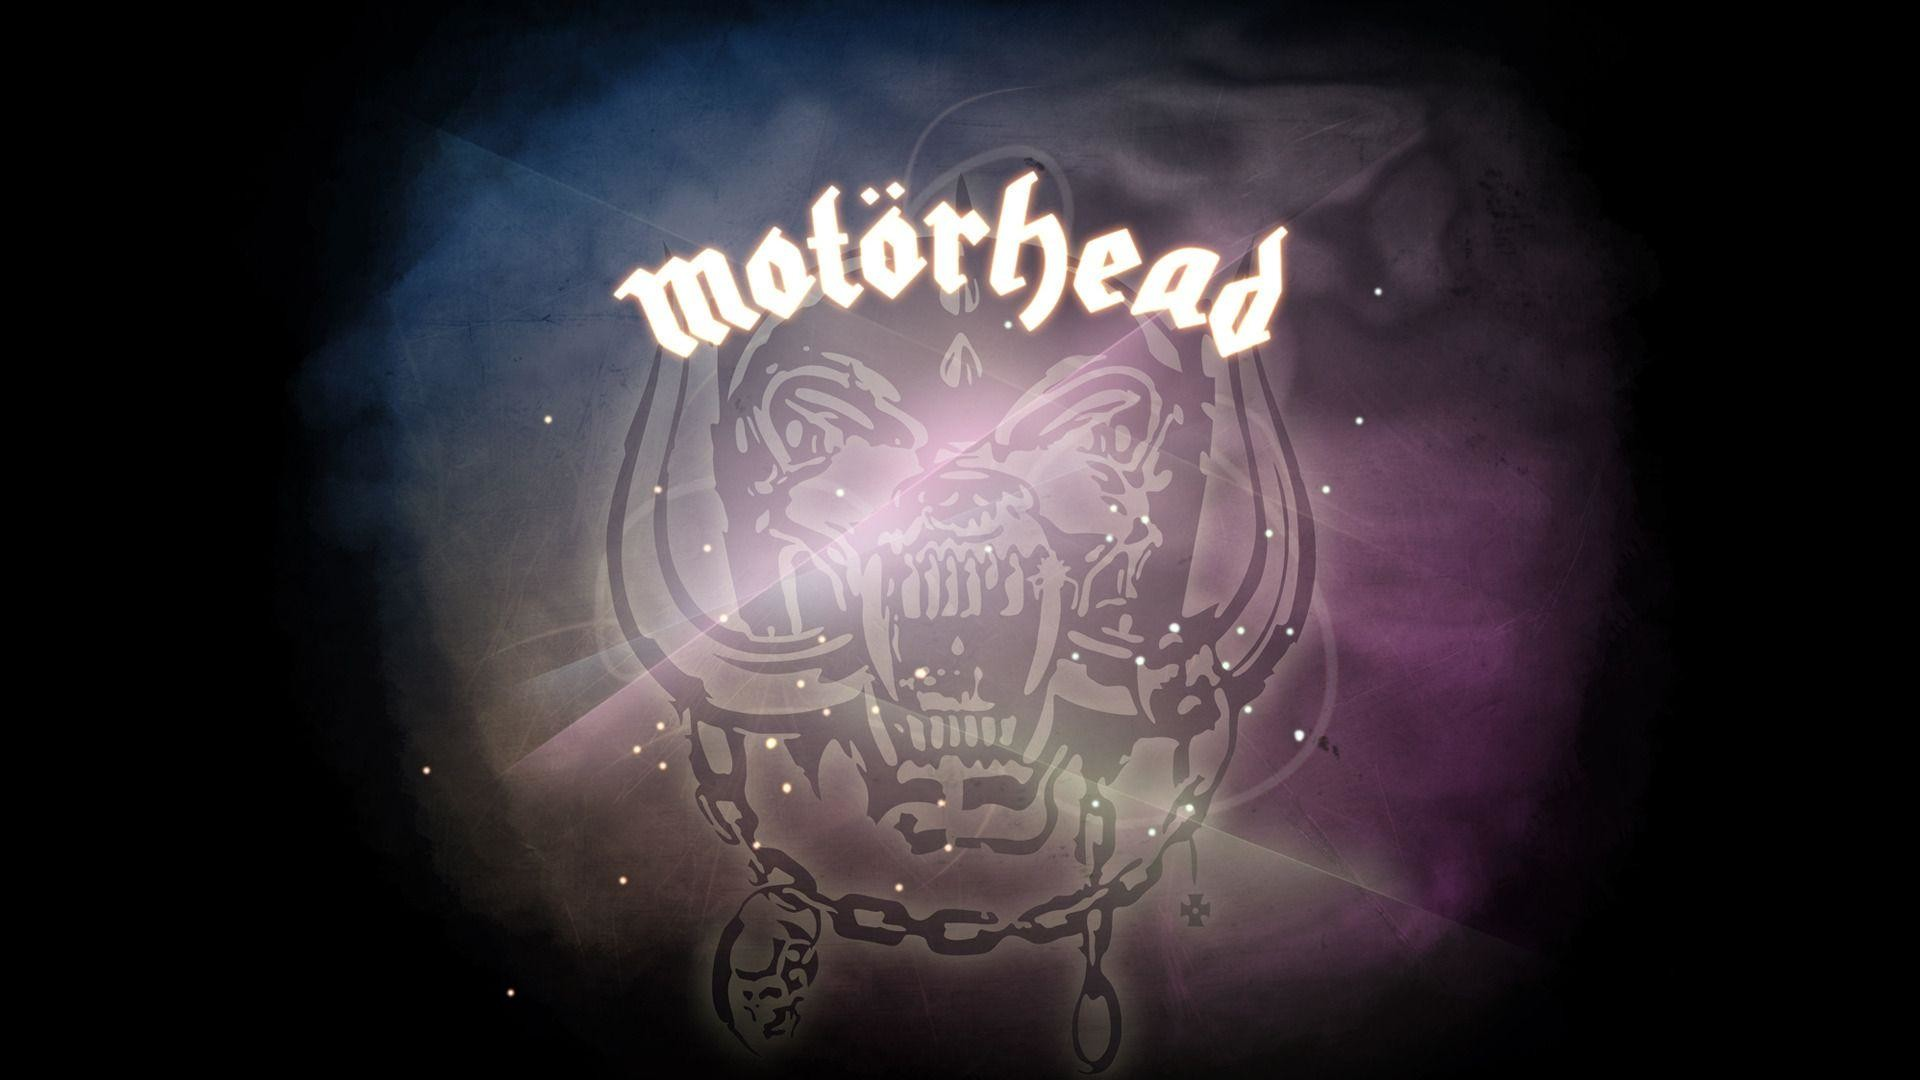 Motorhead wallpaper